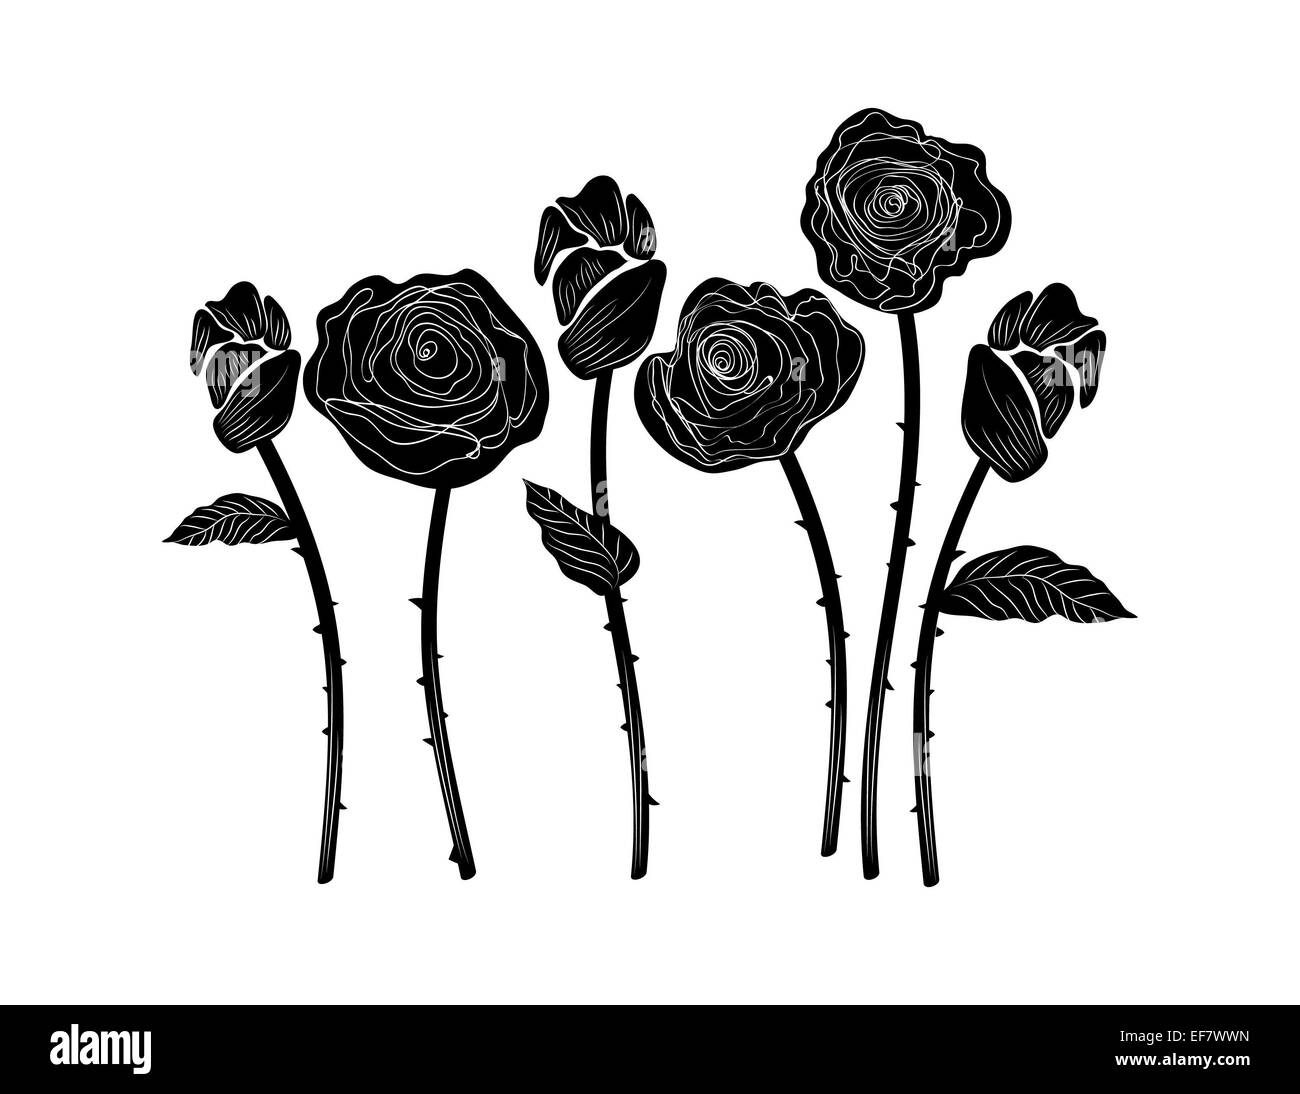 Elegant black and white illustration of six beautiful roses with leaves, stems and thorns for decorative purposes - Stock Image